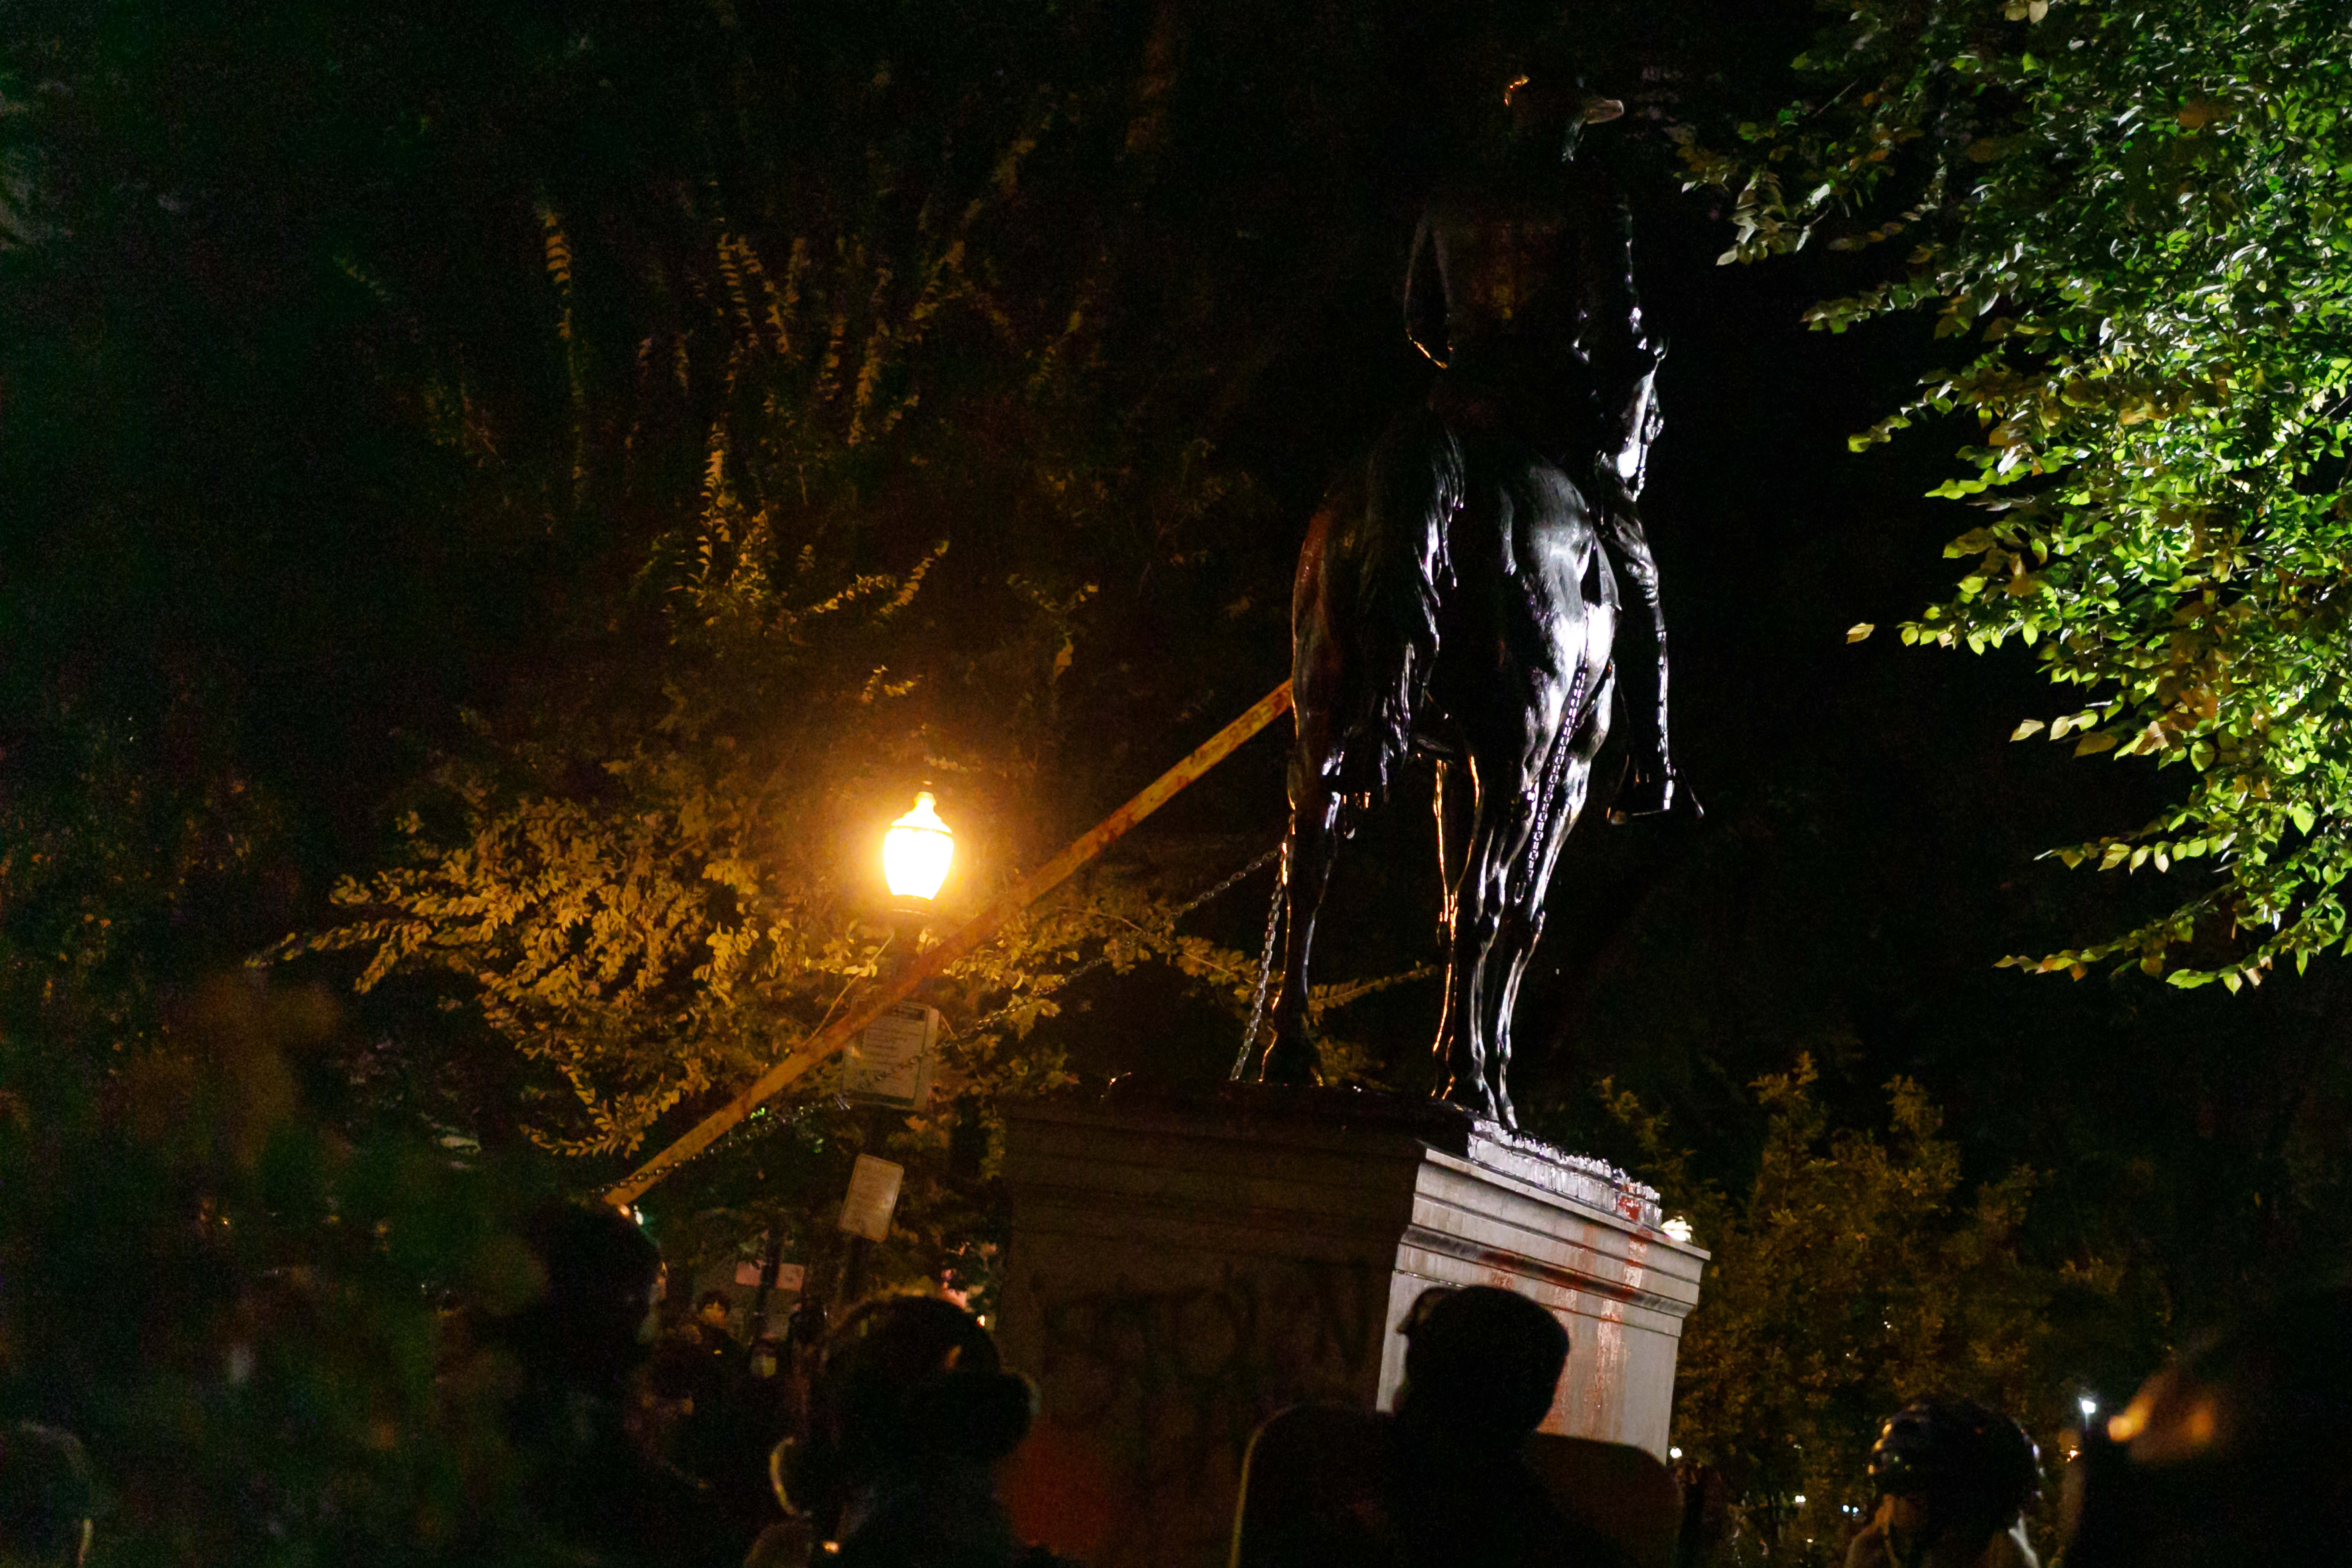 Rioters in Portland Damage Statues of Lincoln and Roosevelt as Part of Columbus Day Protests